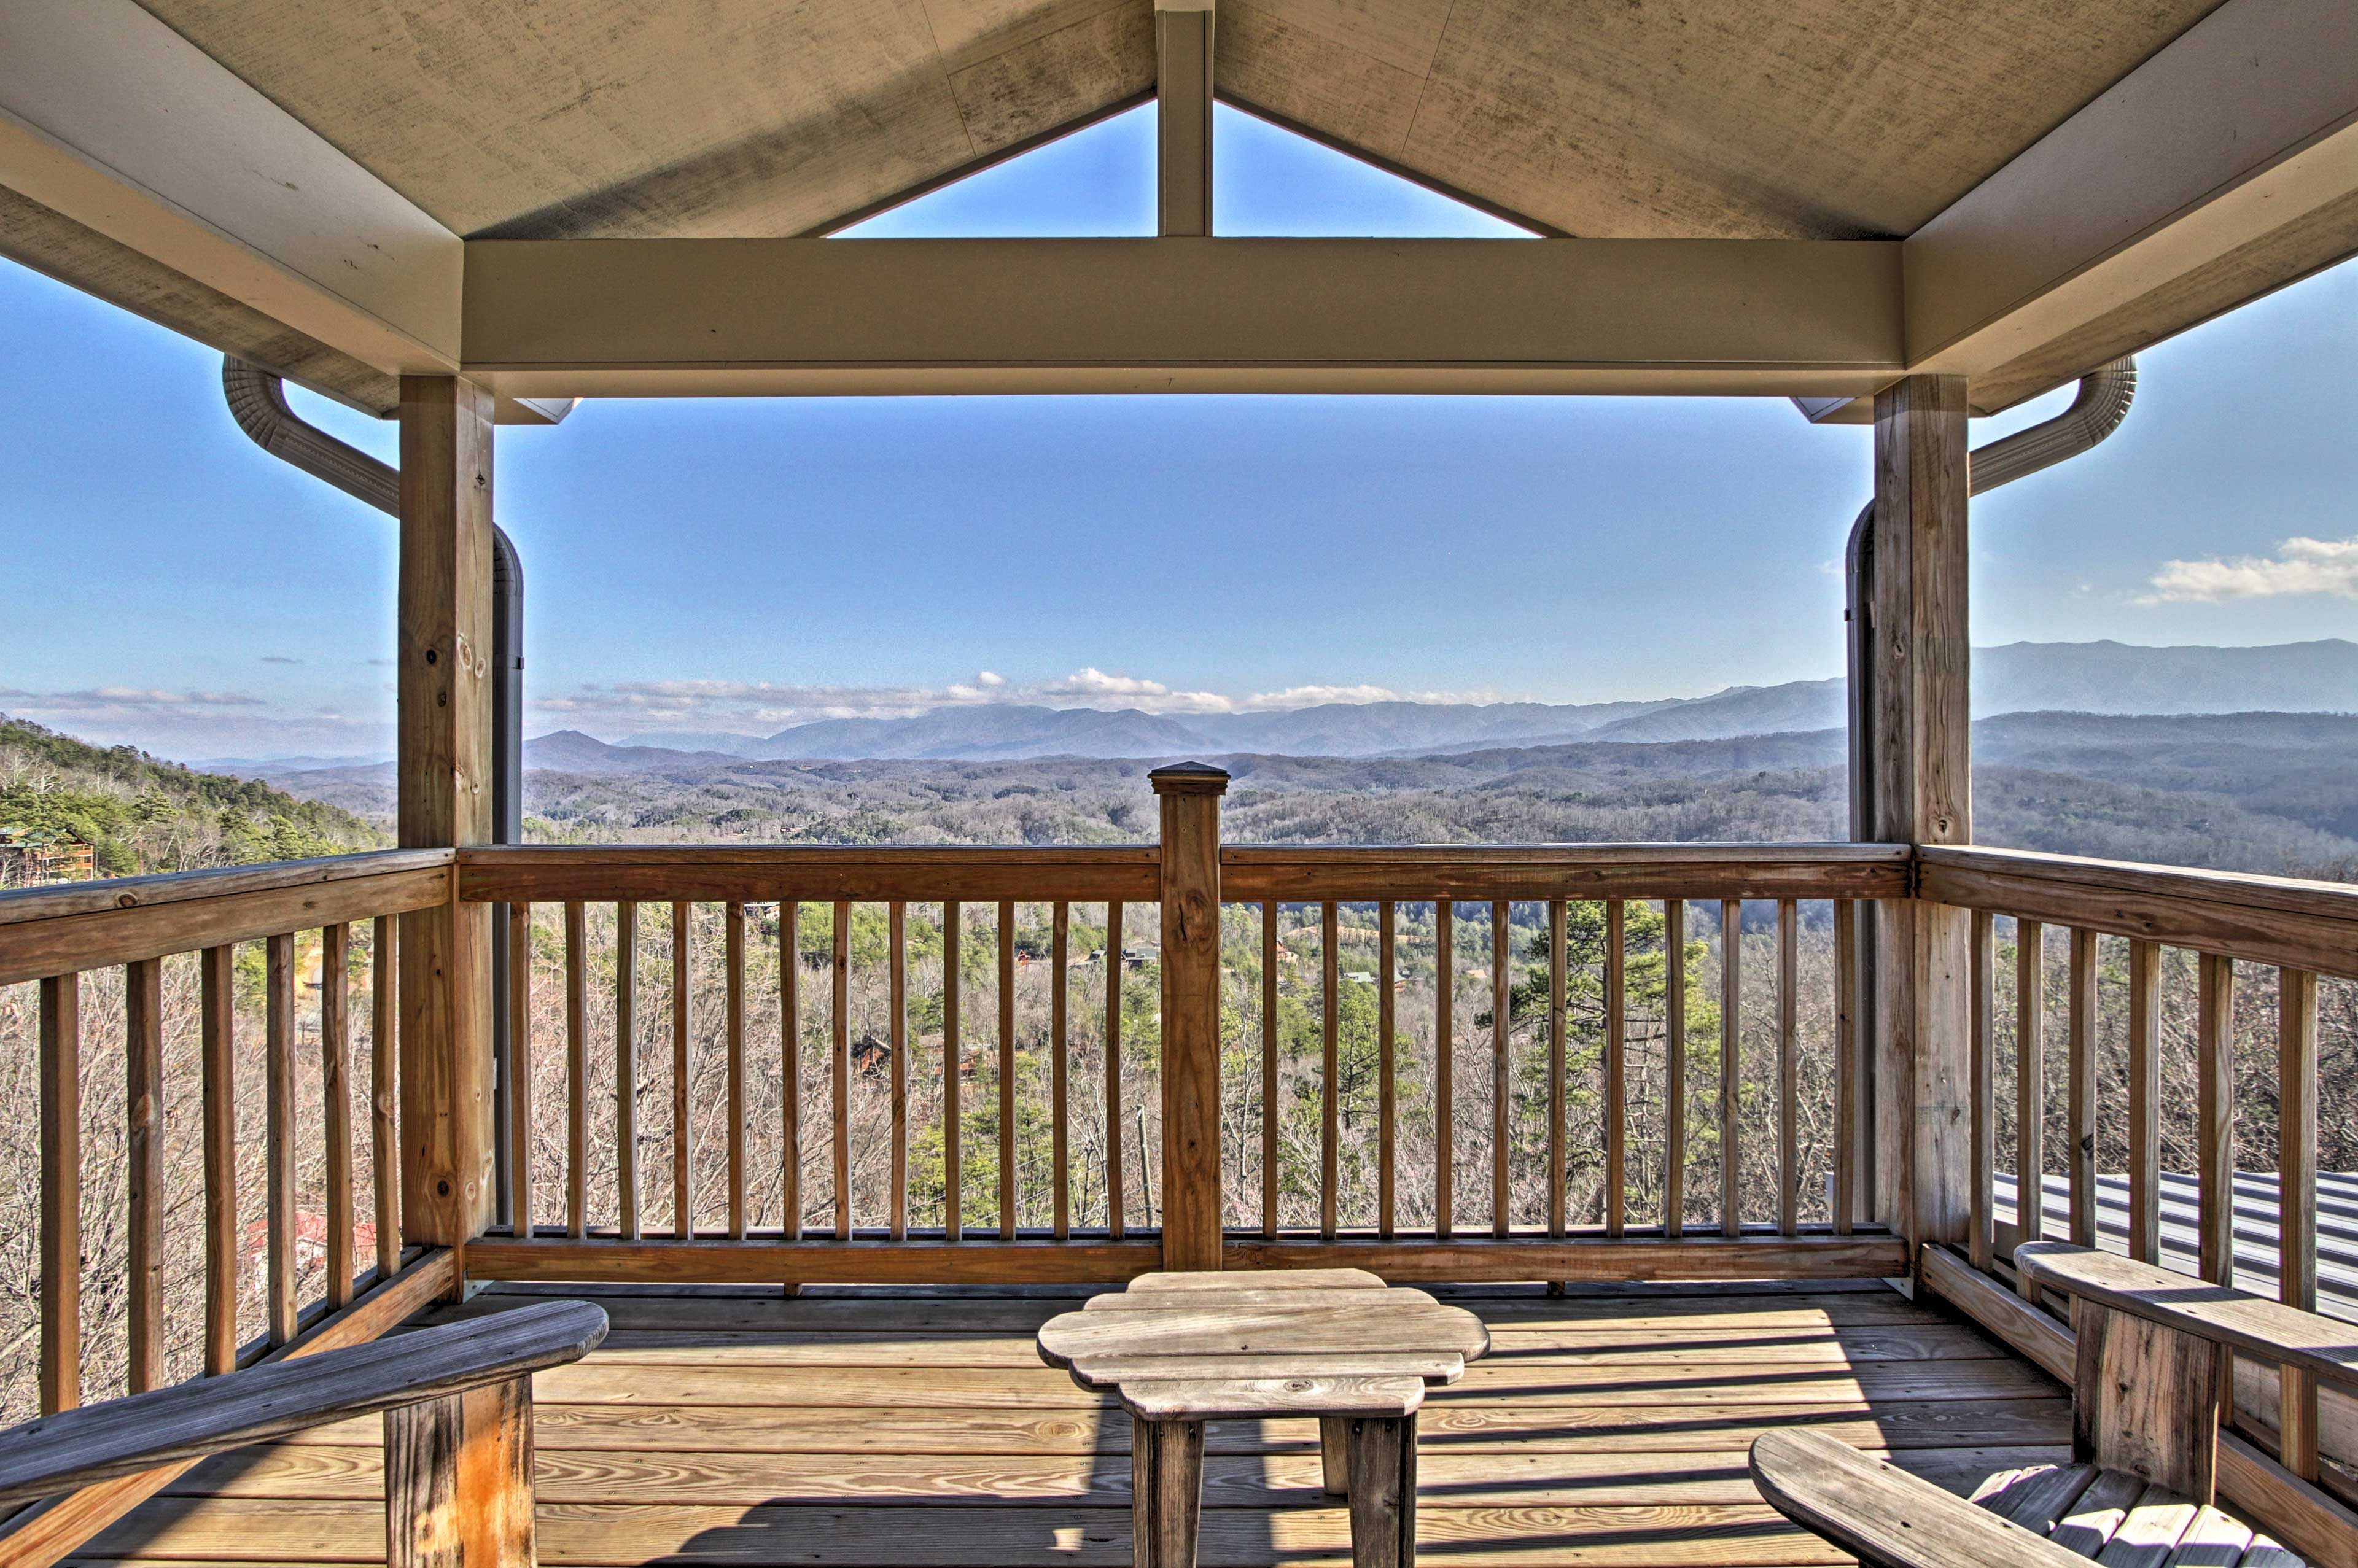 Visit Sevierville, Pigeon Forge & Gatlinburg from this vacation rental cottage!